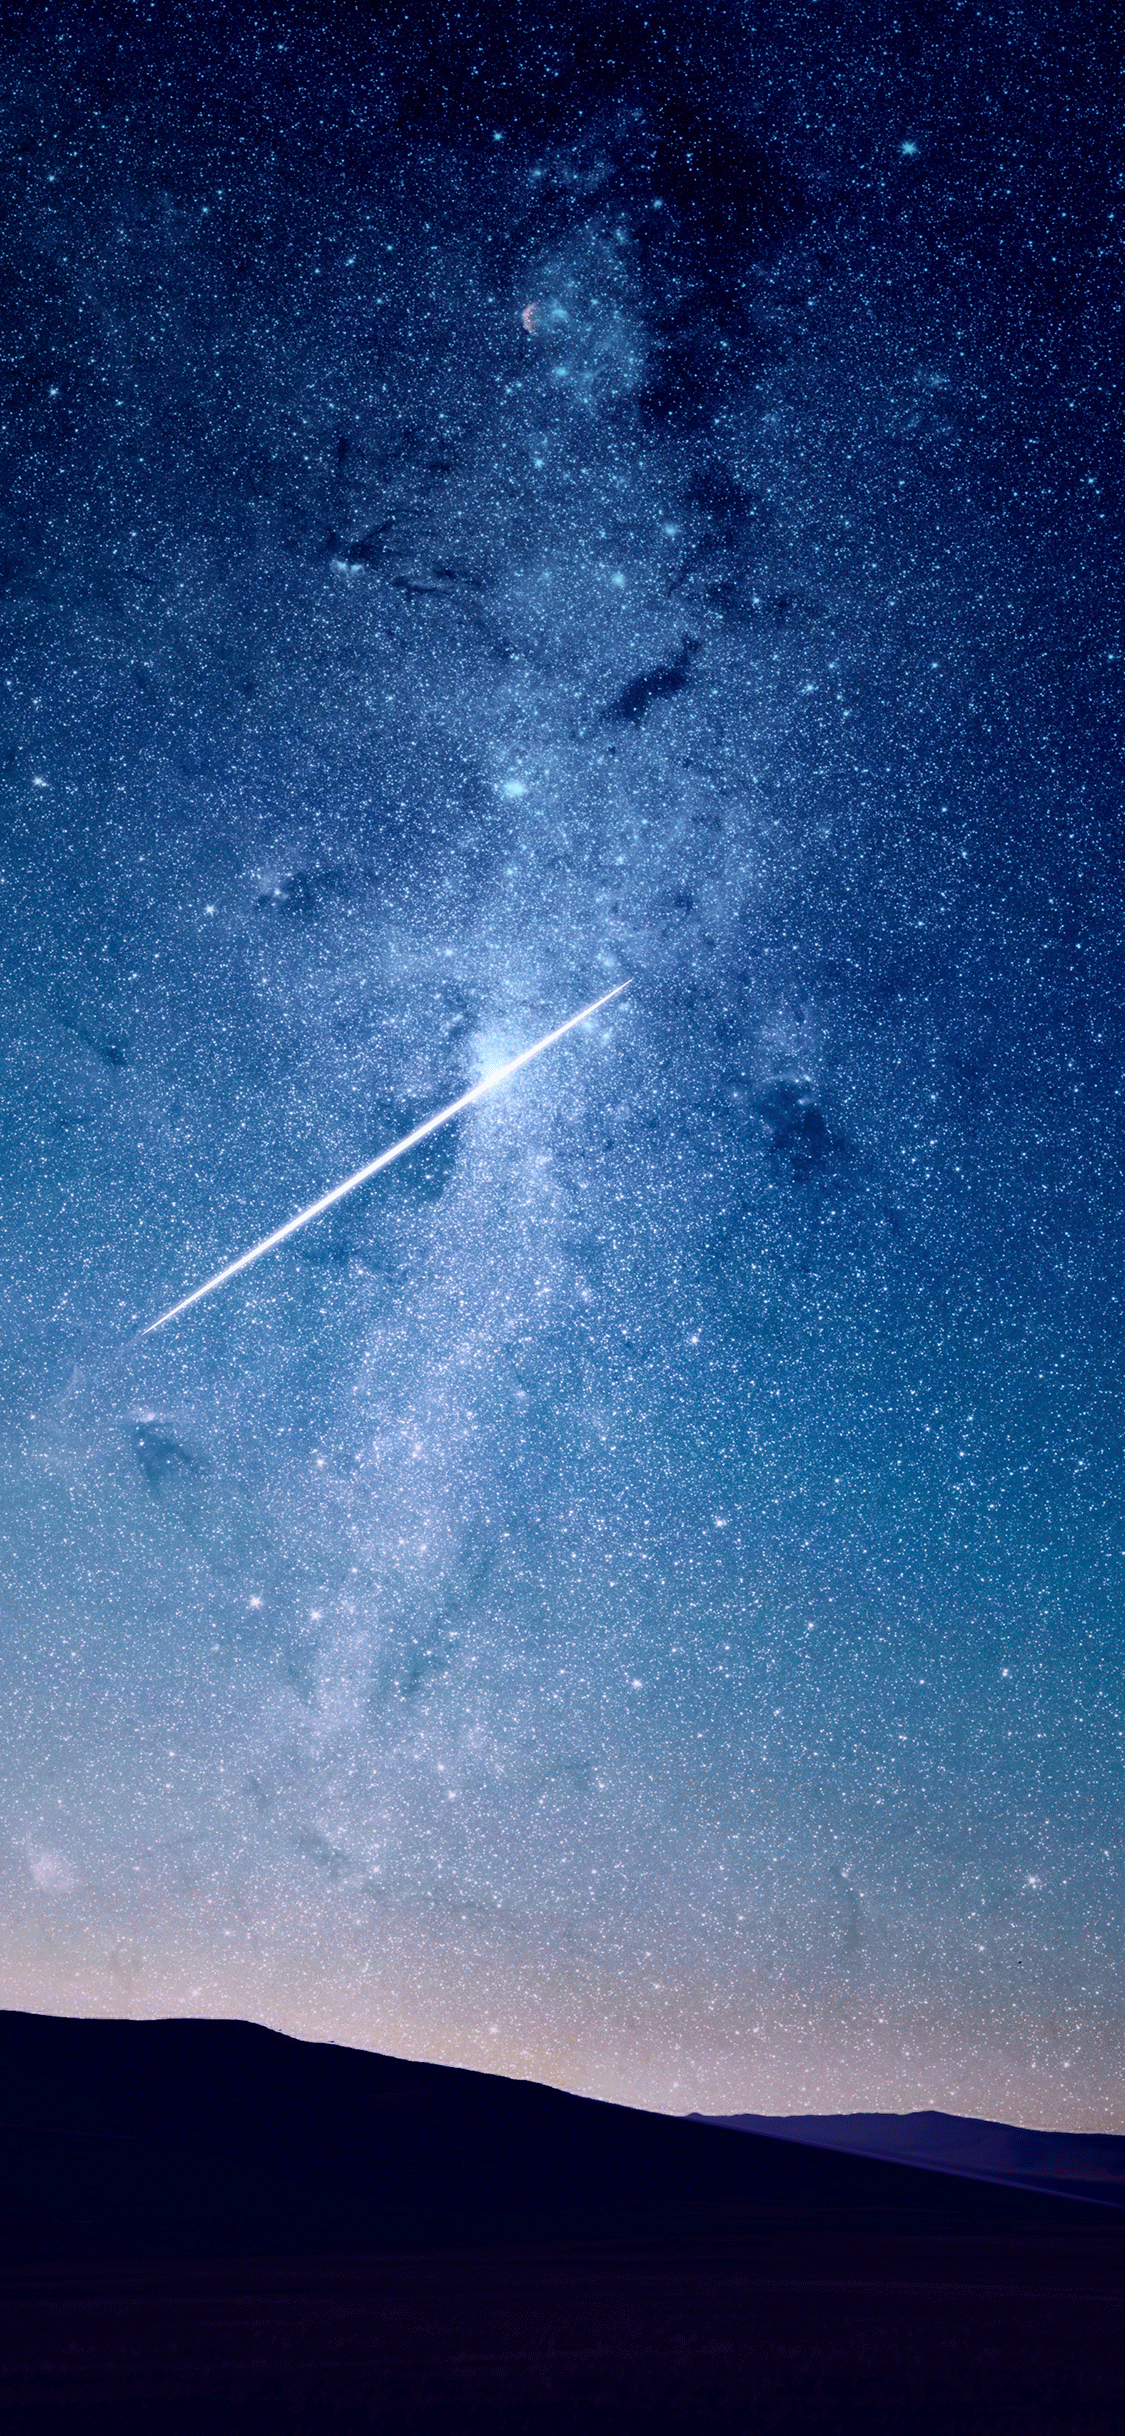 iPhone wallpaper shooting star blue Shooting star